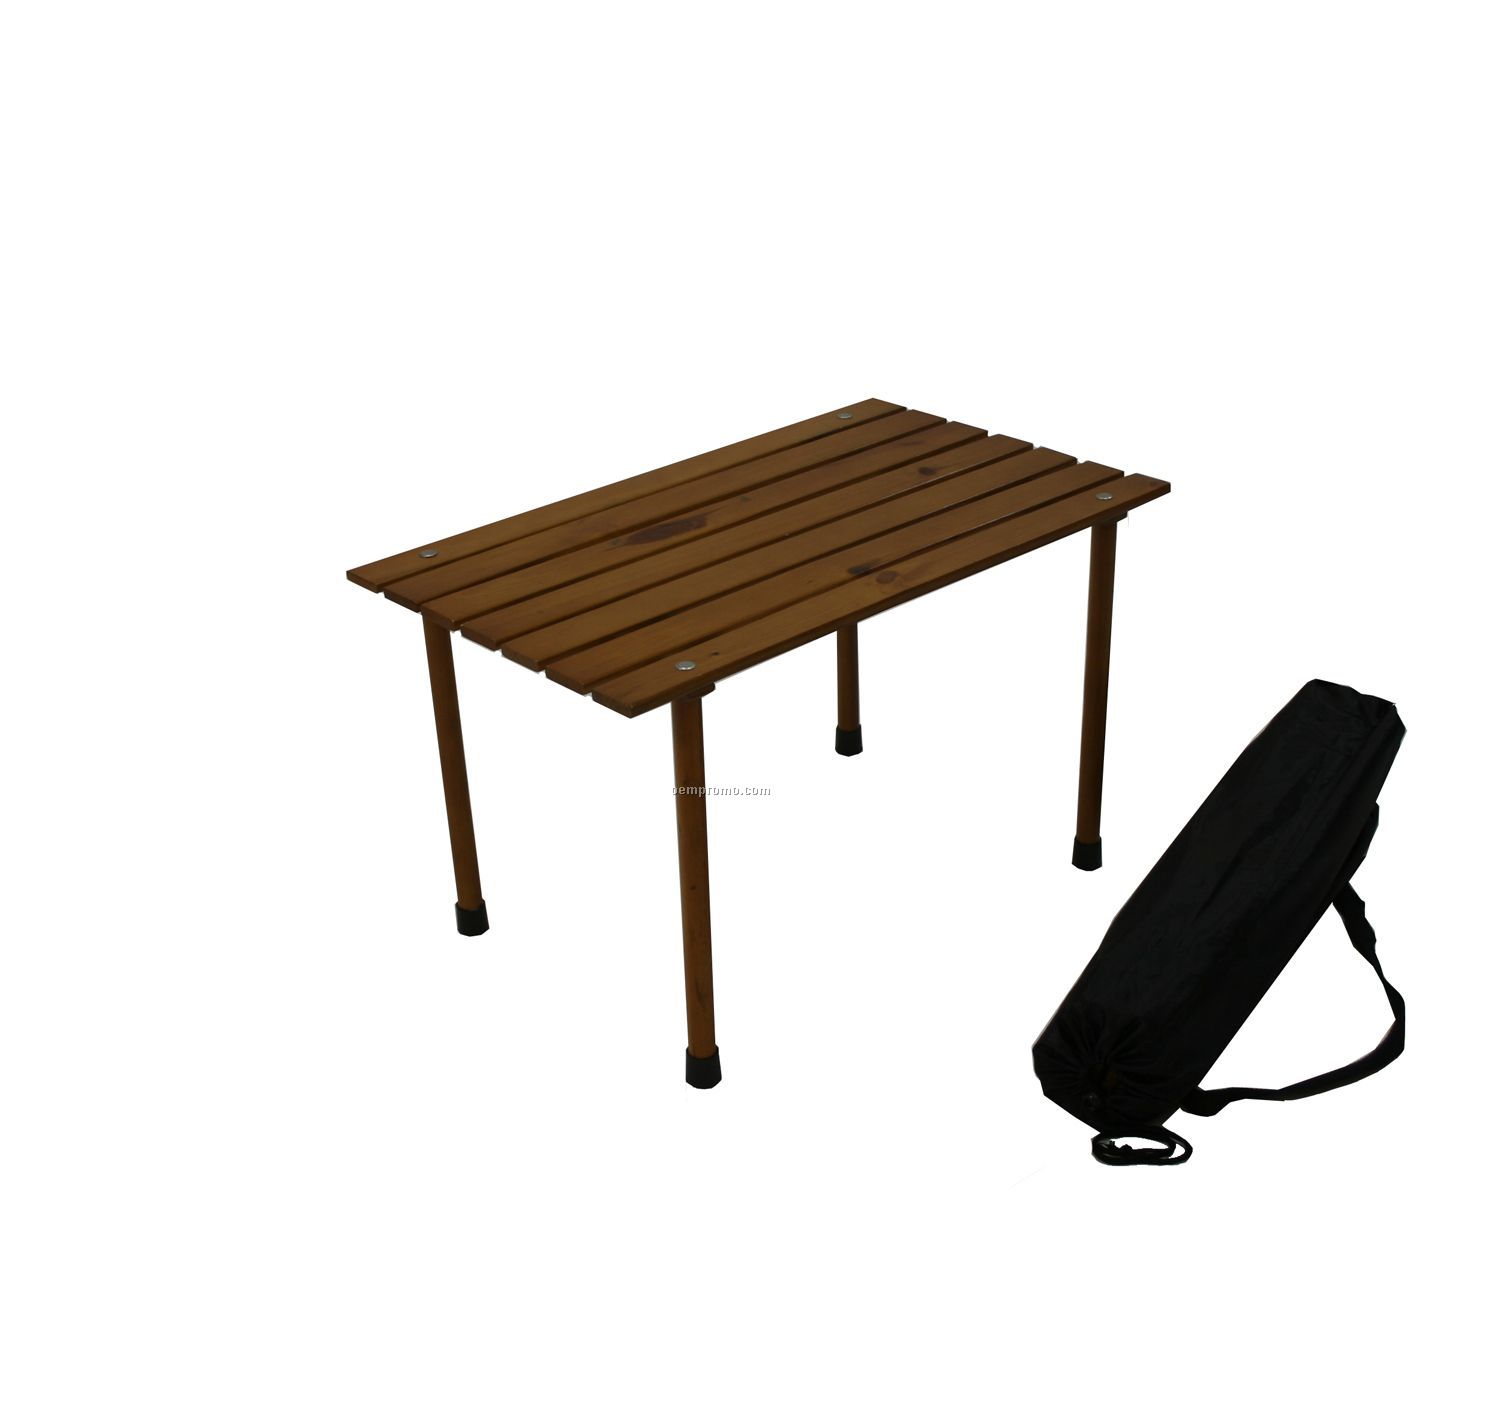 Folding Picnic Table And Bench picture on Small Low Wood Portable Table In A Bag 38323 with Folding Picnic Table And Bench, Folding Table b325e17cad33777d37b9a4cafa8e613d